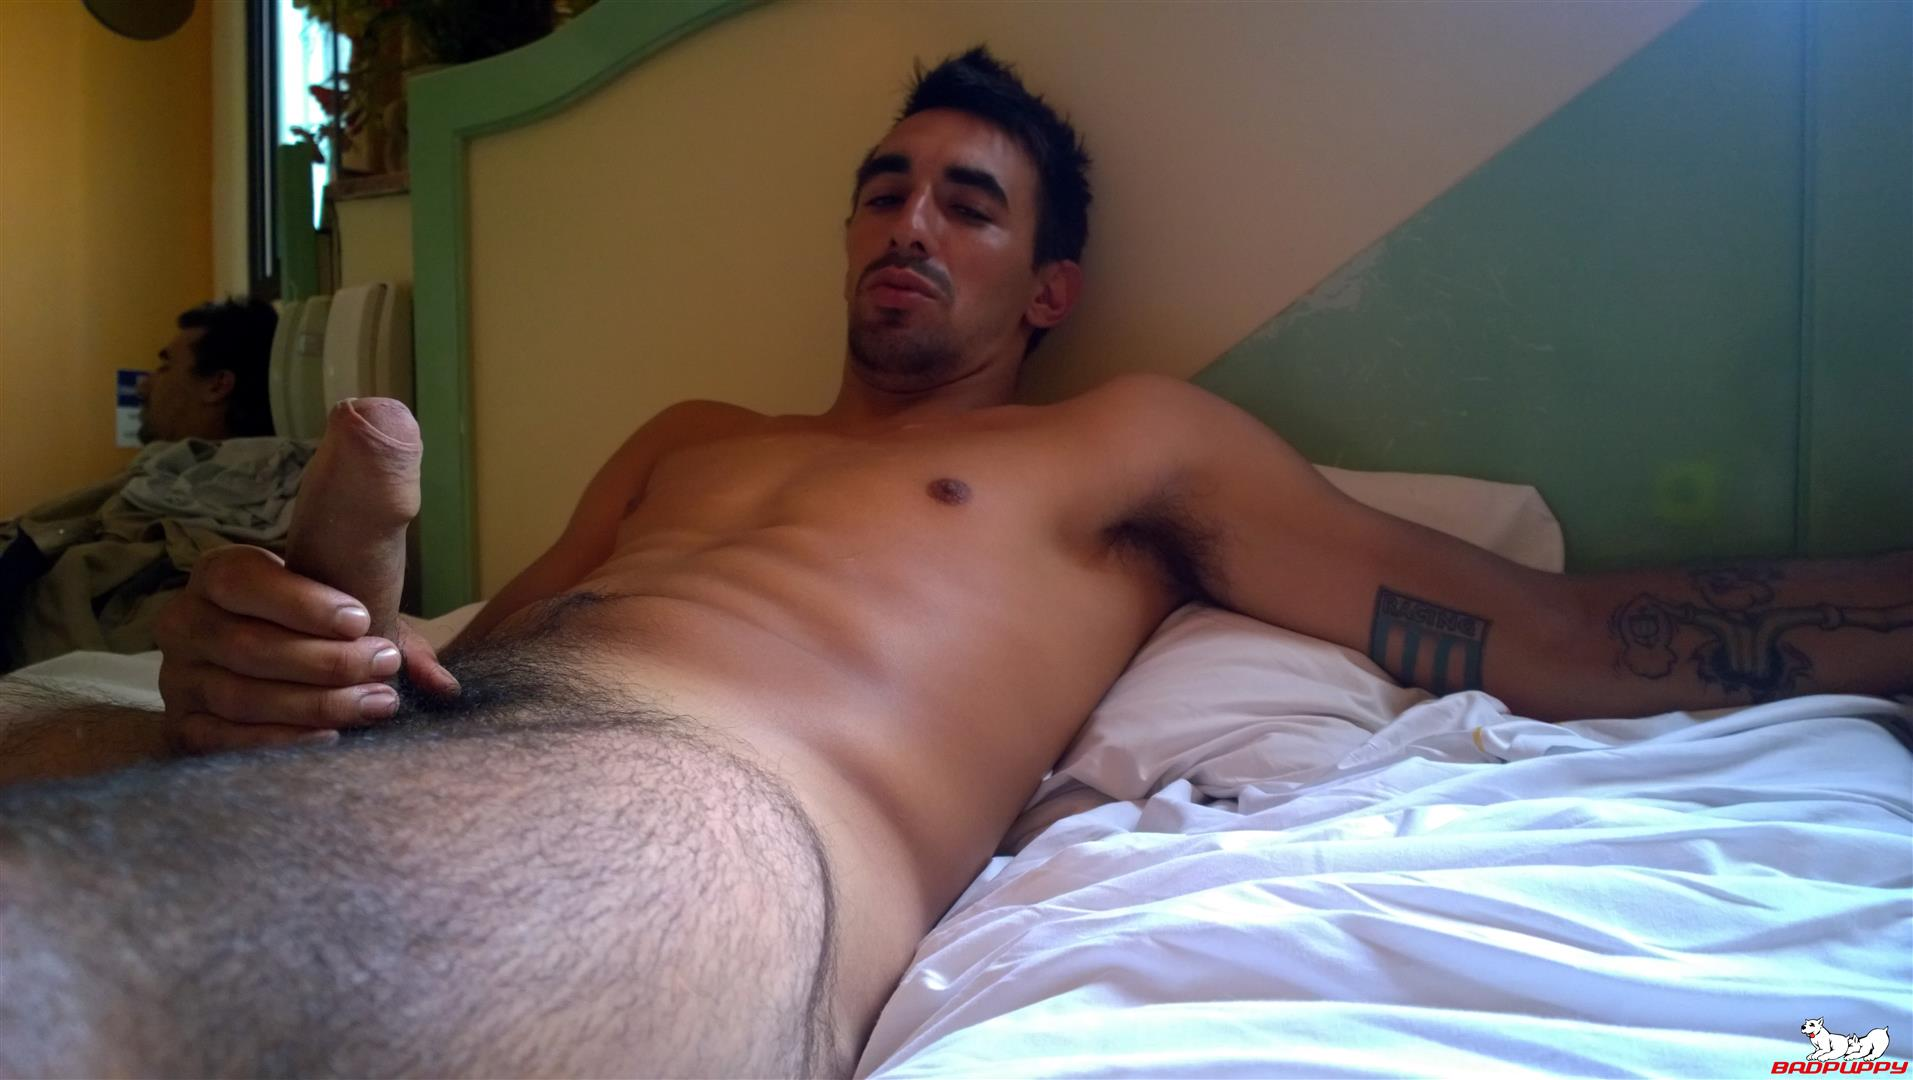 Badpuppy-Fabian-Flores-Argentinian-with-a-Big-Uncut-Cock-05 Argentinian Hunk With A Big Uncut Cock Auditions For Gay Porn